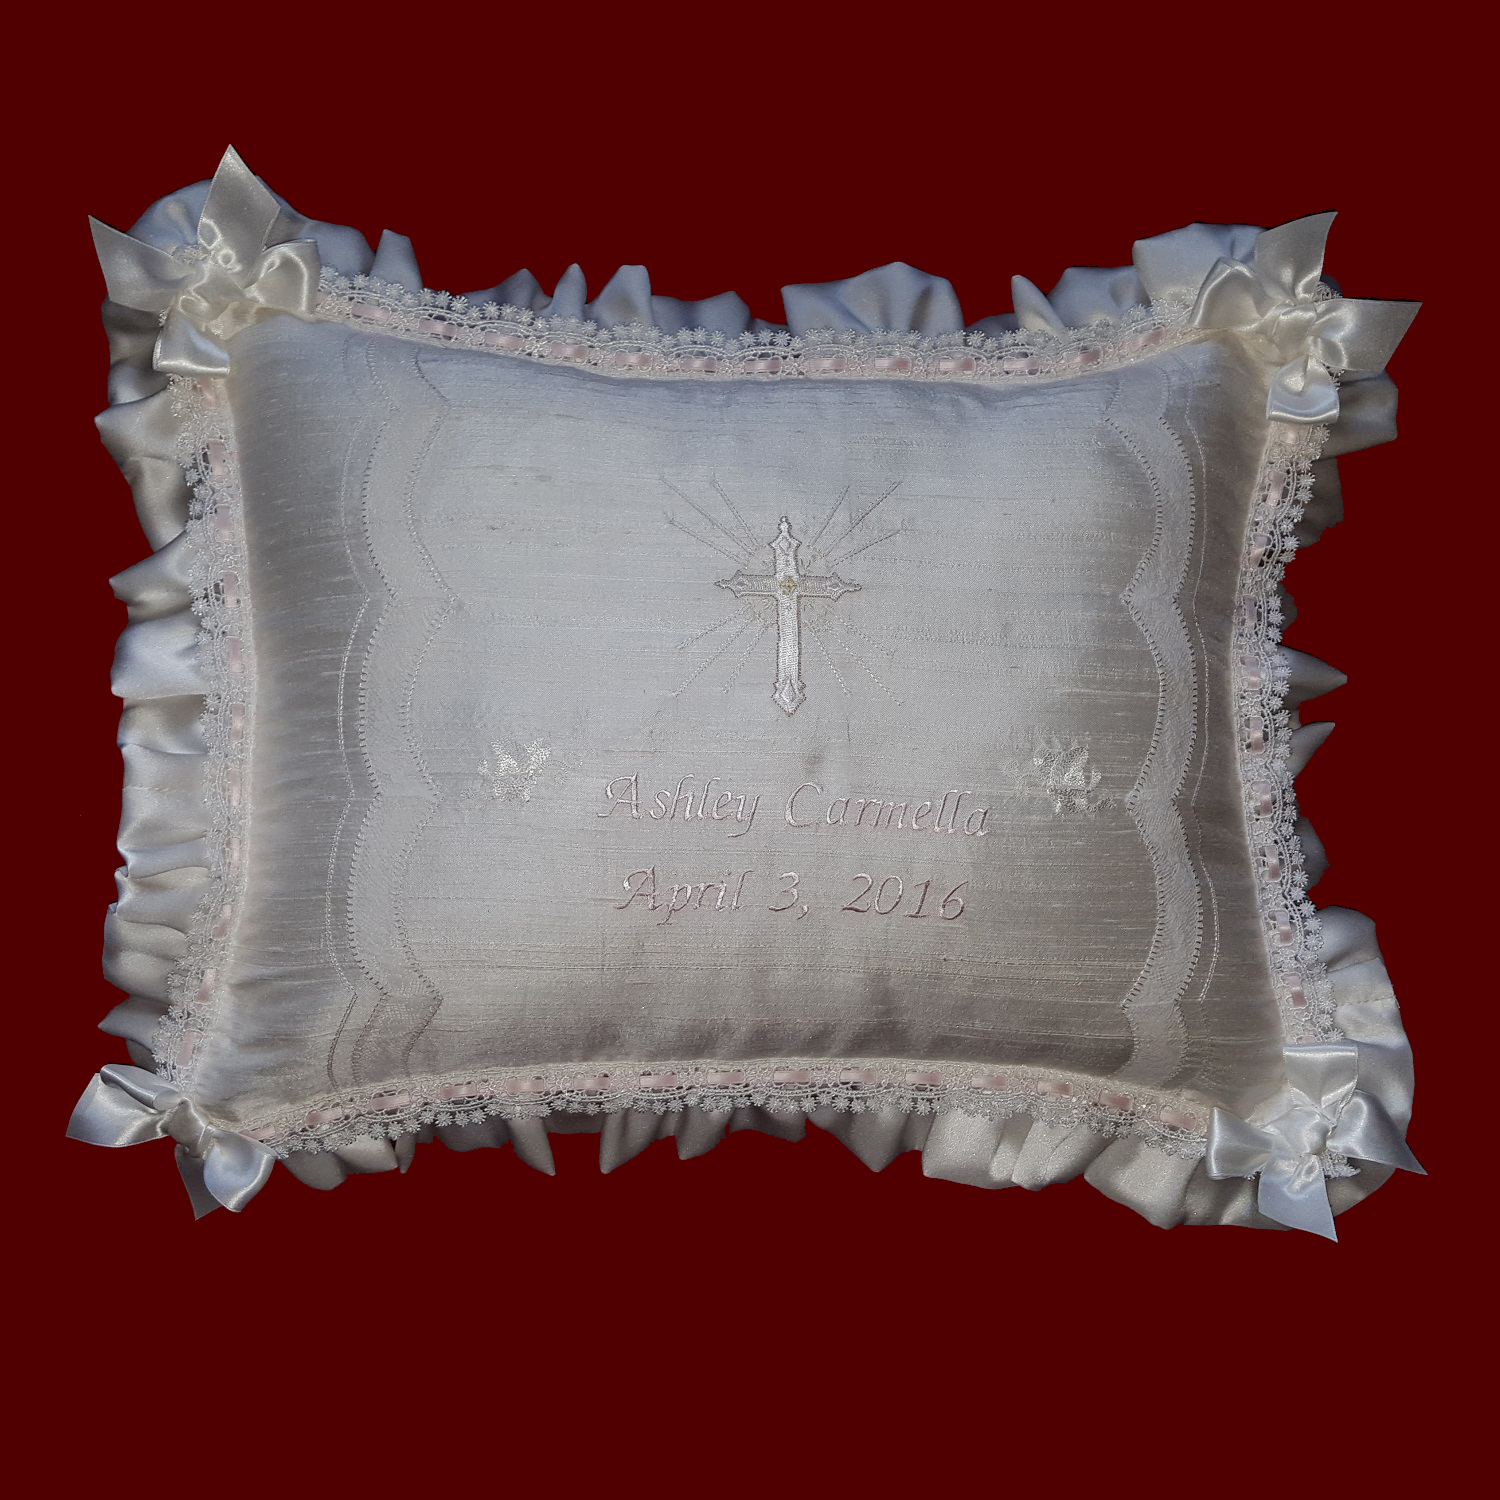 Personalized Christening Pillow With French Lace Scallops & Venice Beading